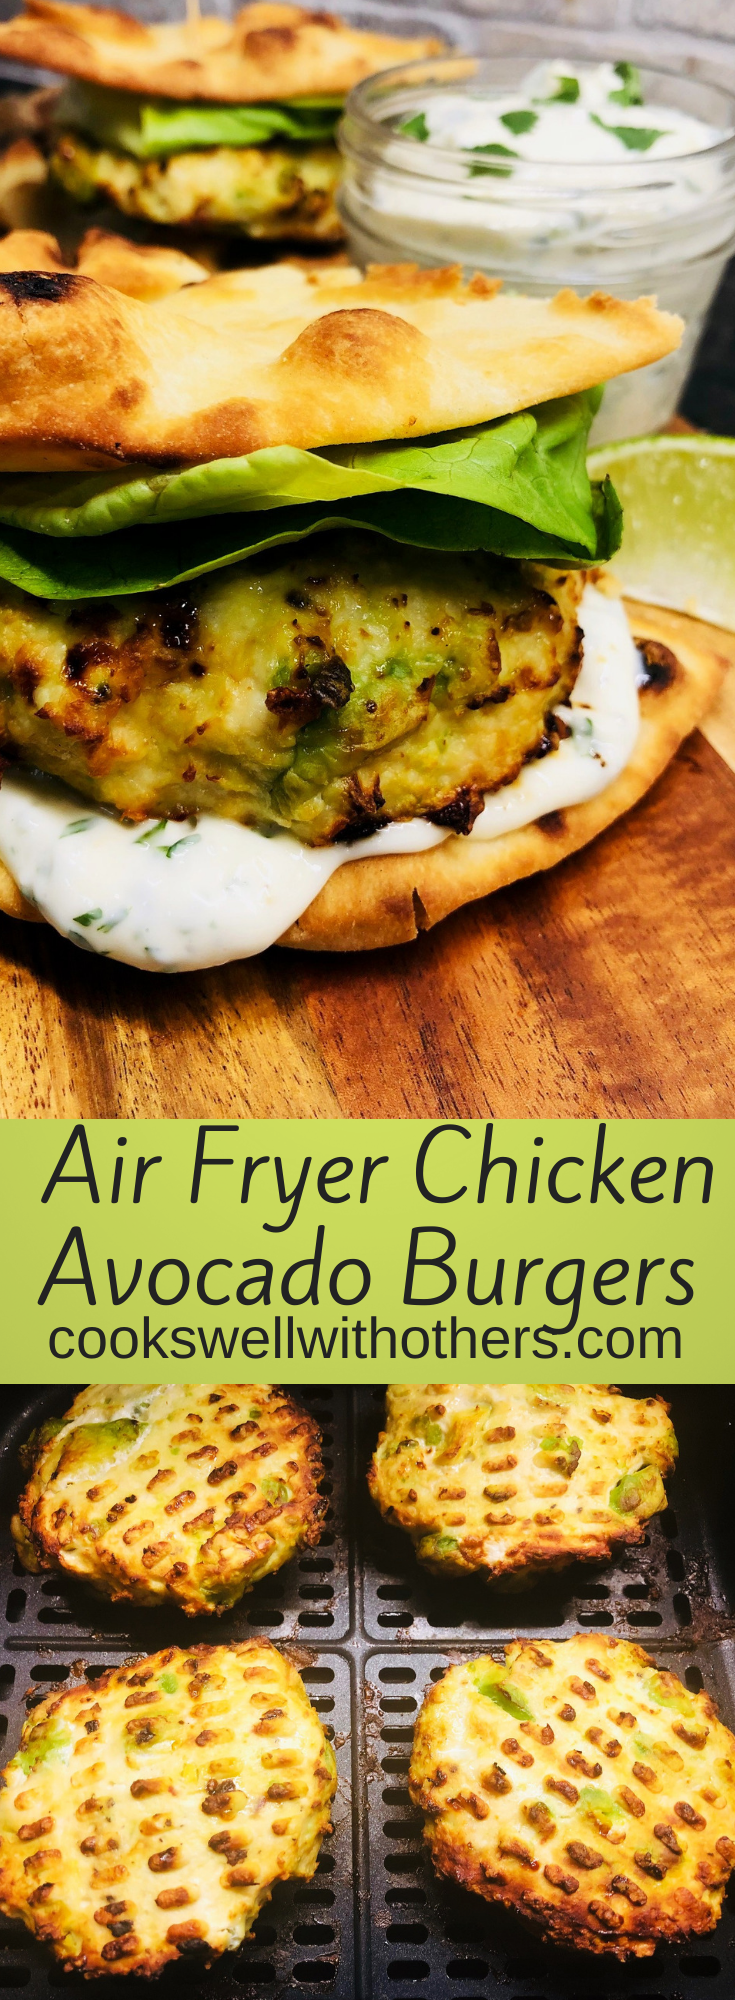 Air Fryer Chicken Avocado Burgers Cooks Well With Others